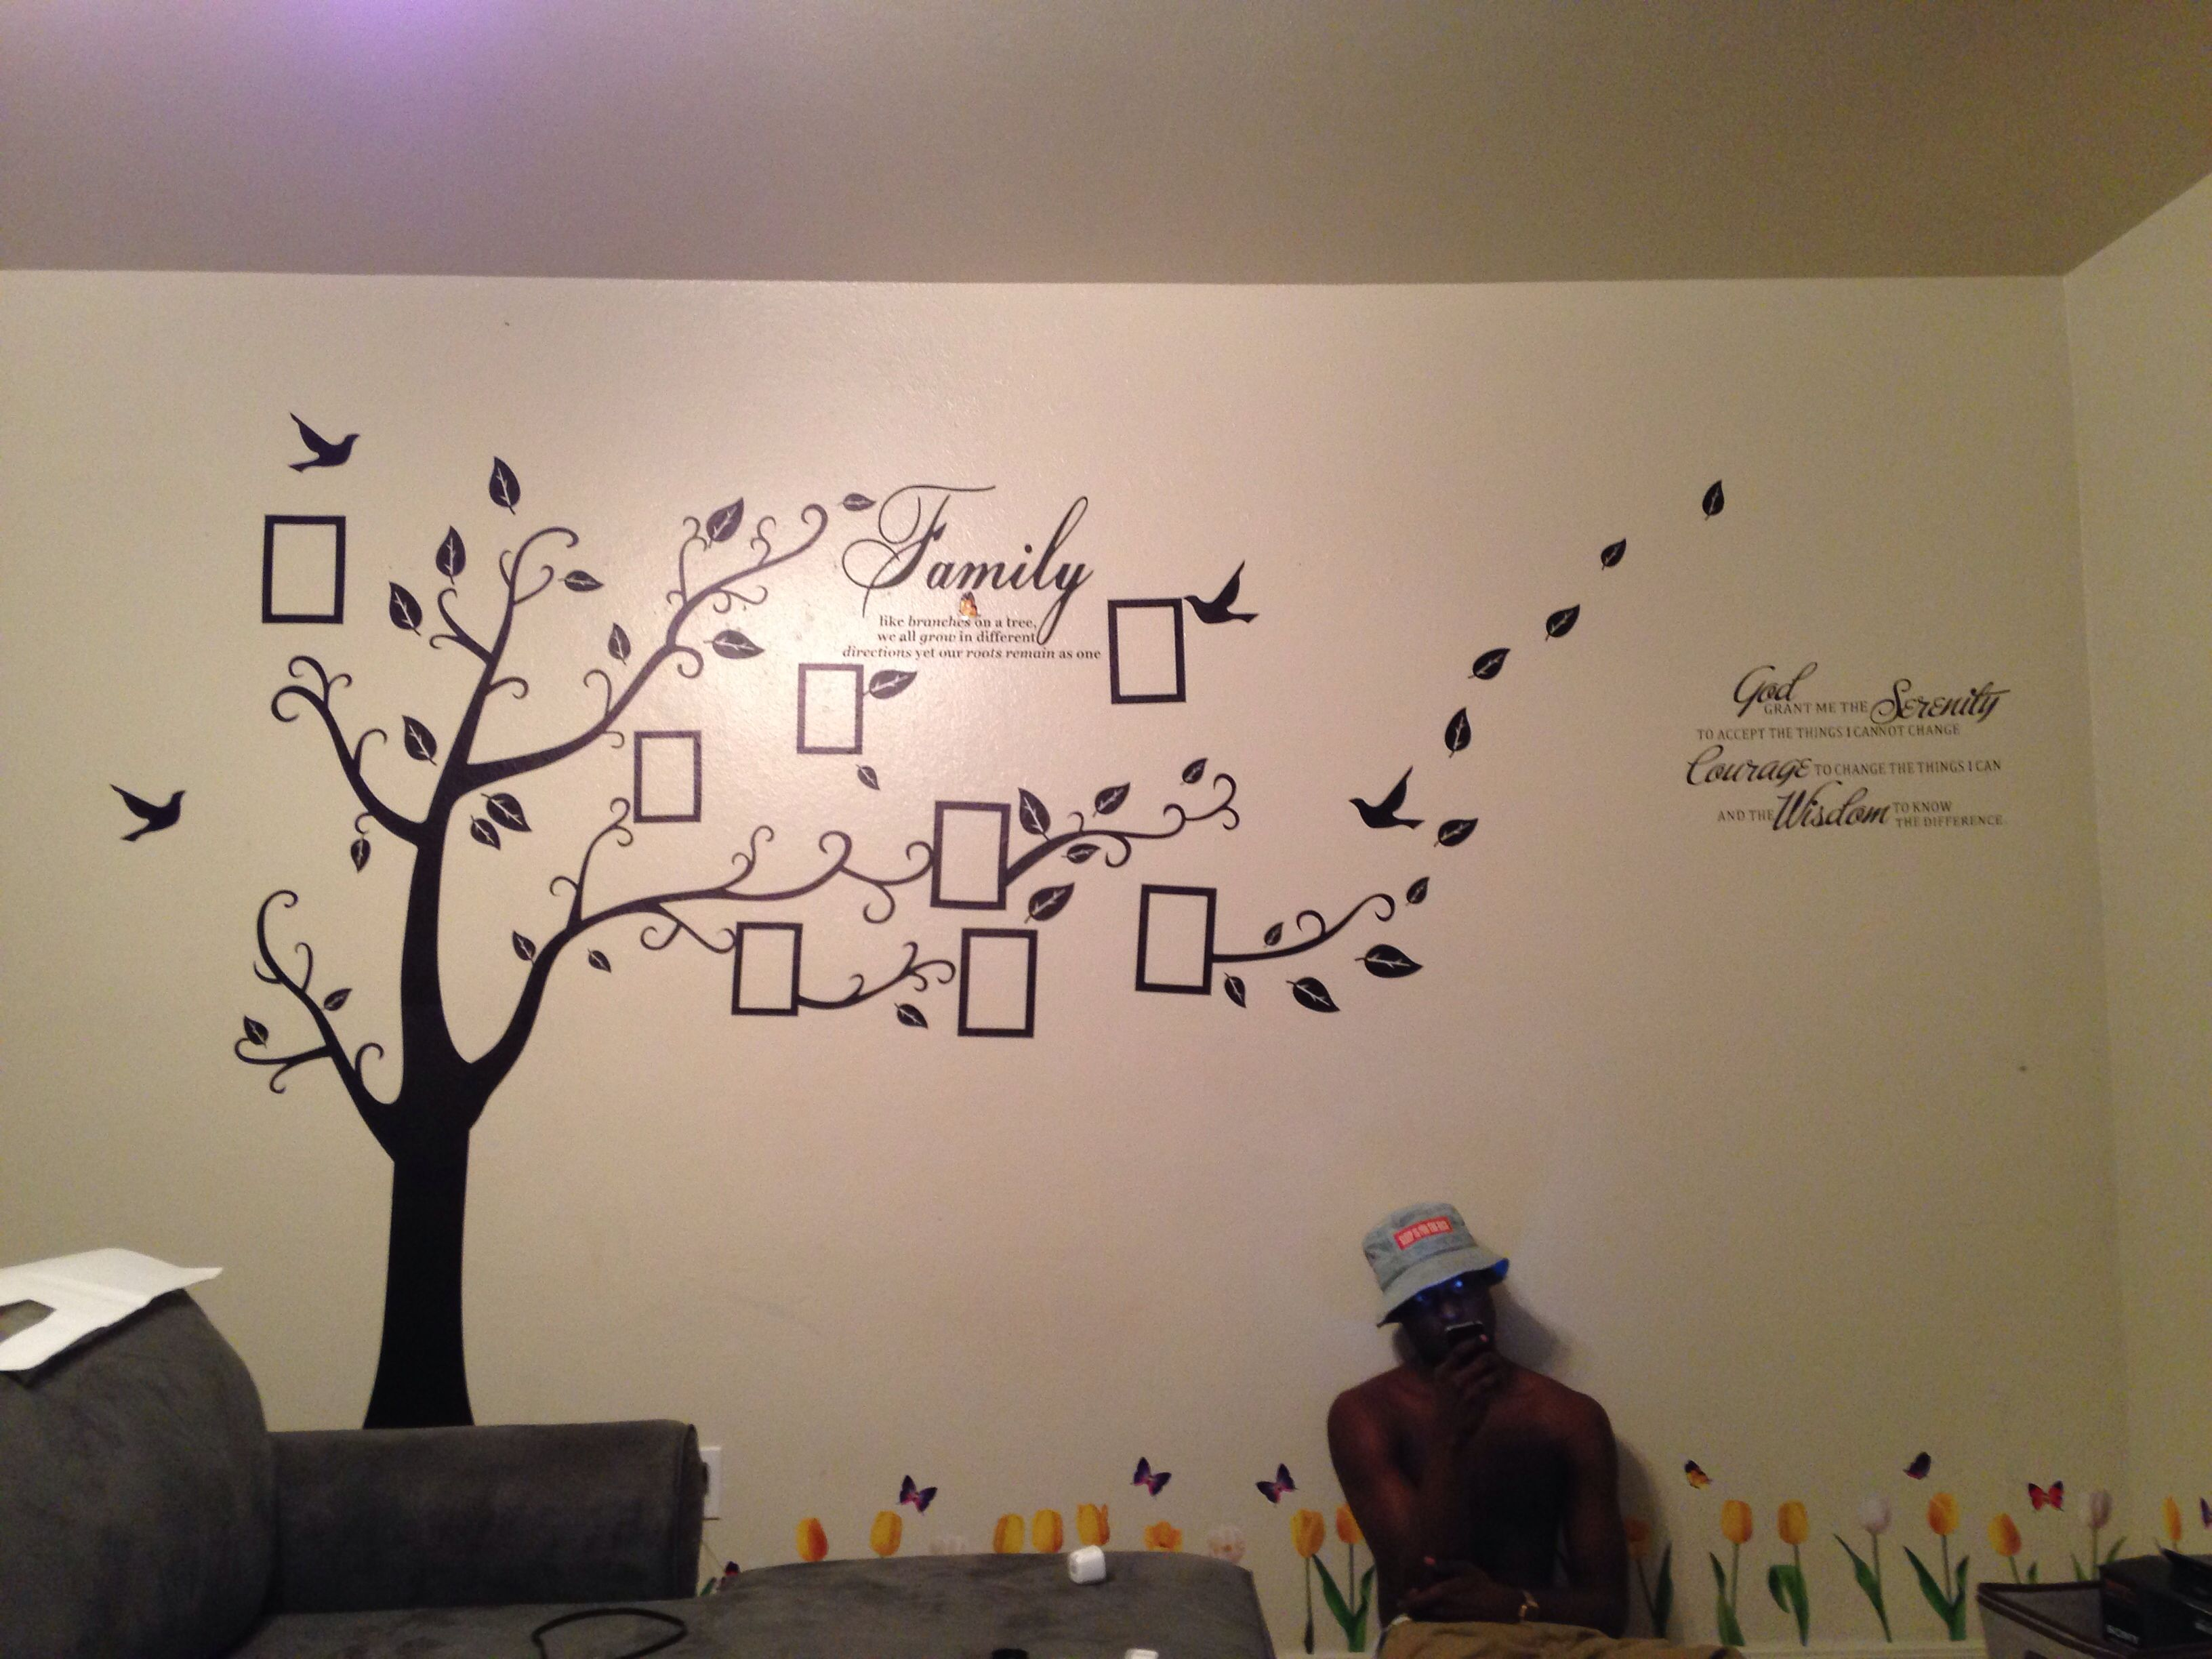 My Son Next To The Wall Stickers We Just Put Up Ideas For The - How do i put up a wall sticker